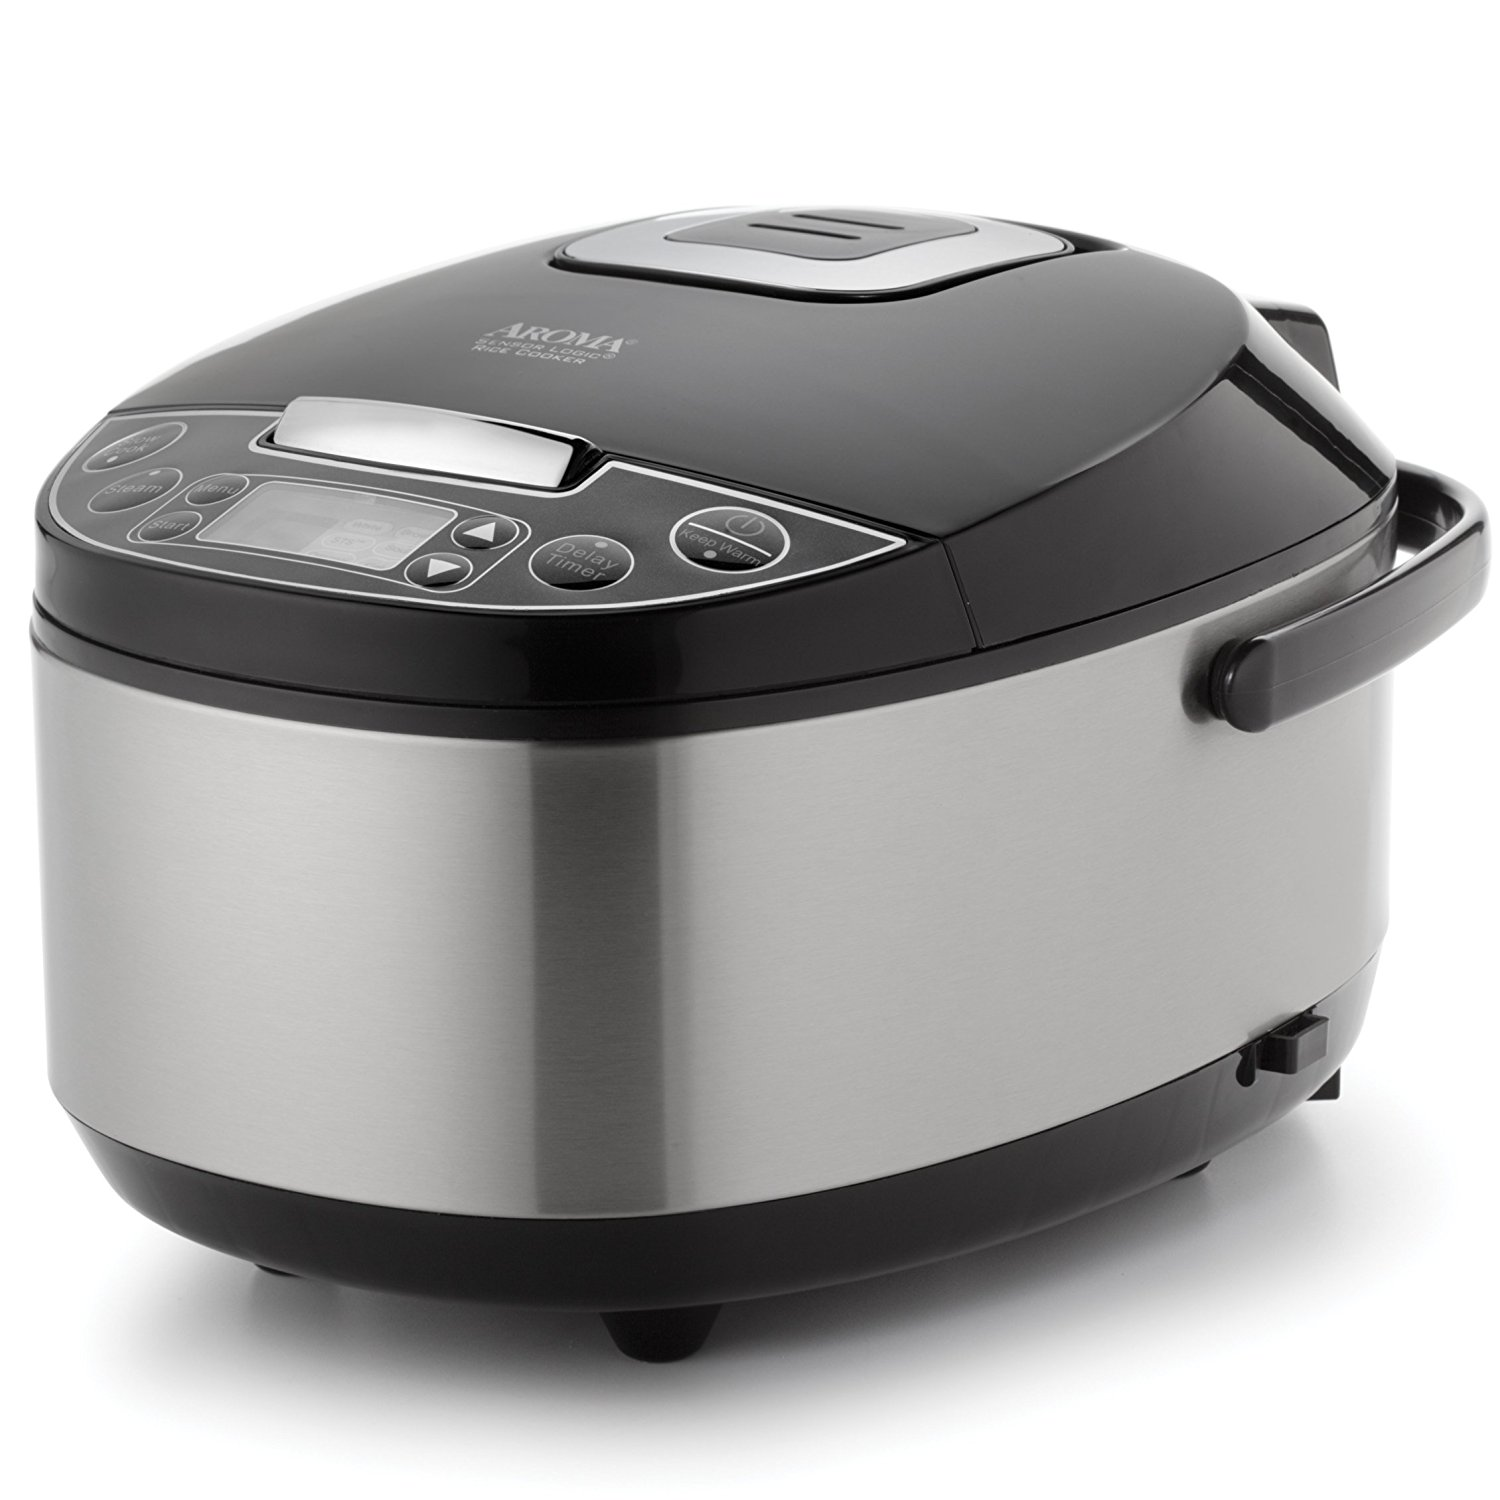 Top 10 Best Rice Cooker Reviews Of The Year 9